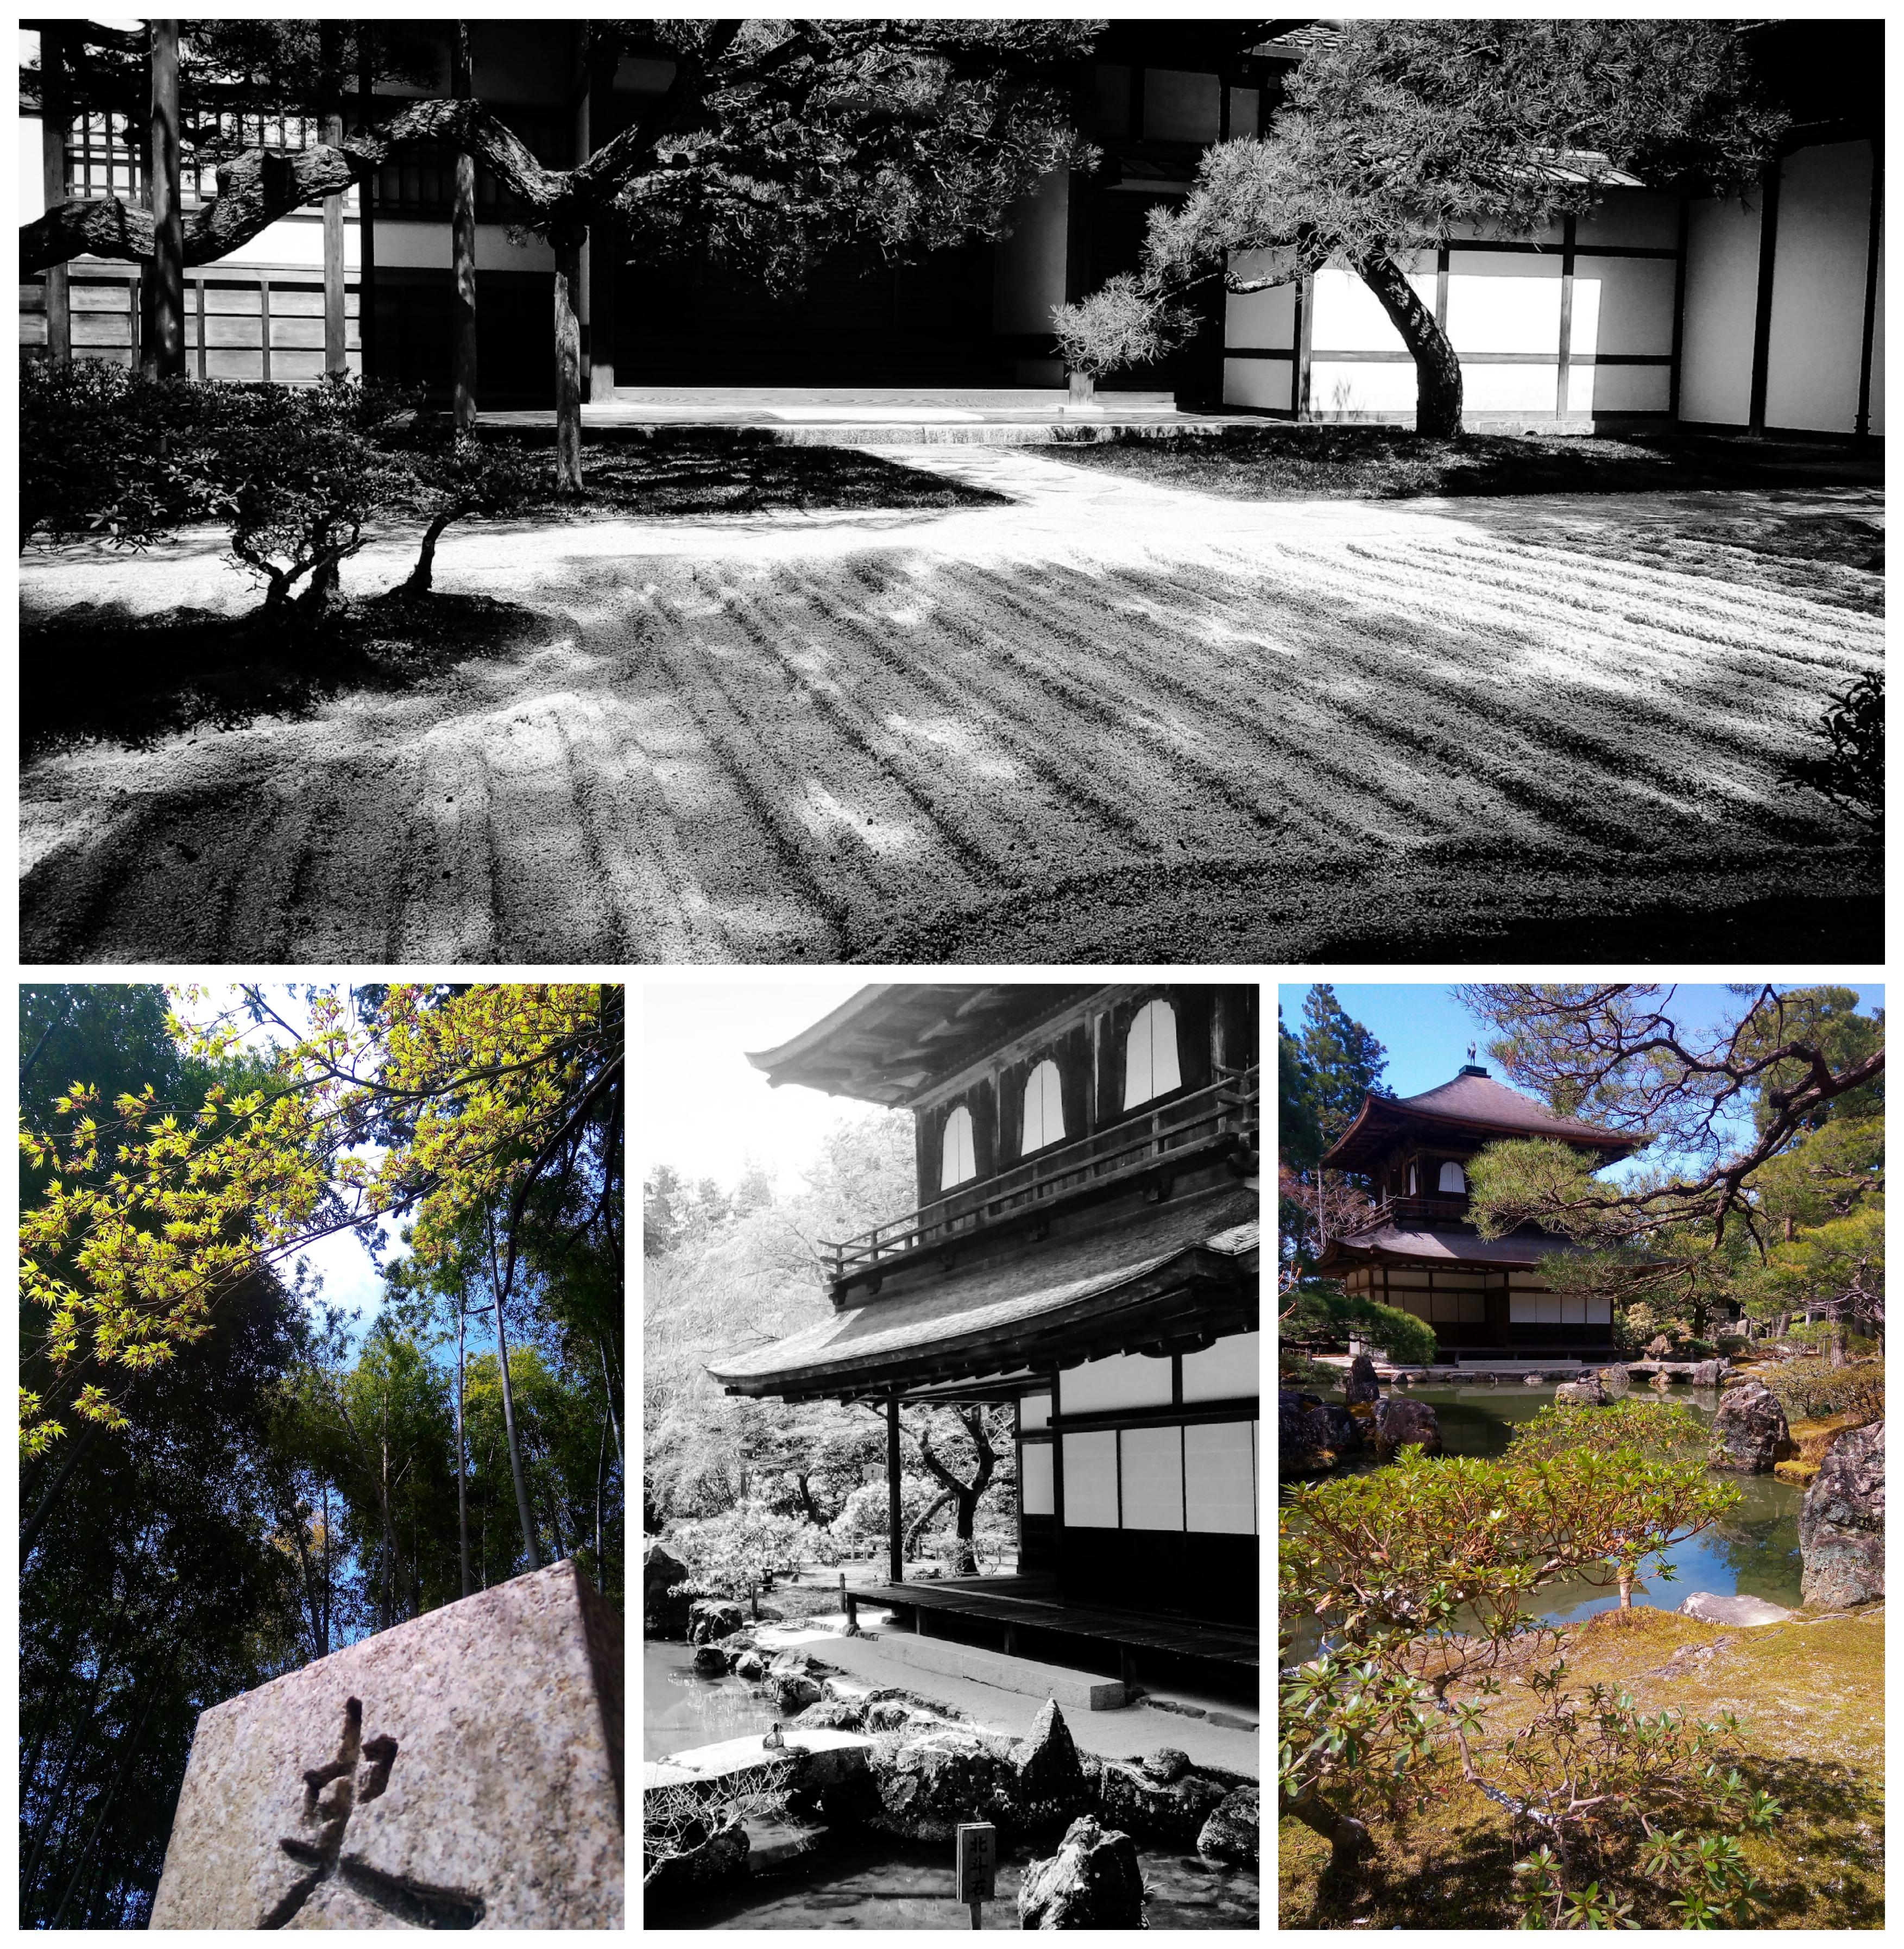 Urban Photos - Sakyo-Ku, Kyoto, Japan. 'Ginkaku-Ji Temple.' Dating back to 1482, the Rinzai Zen Buddhist temple is commonly known as the 'Silver Pavilion' (Ginkaku), due to original plans for the central pavilion to be covered in silver foil. The temple's stunning garden is thought to have been created by famed 16th century Japanese landscape artist Soami. Strangely, I noted signs at the entrance stating no sketching allowed, this wasn't the last time I would see this in Kyoto. For some unknown reason, a few of the most popular sites in Kyoto are not exactly artist friendly, but luckily, less tourist heavy shrines and temples are more accommodating to artists. sketchbookexplorer.com @davidasutton @sketchbookexplorer Facebook.com/davidanthonysutton #japan #kyoto #sakyoku #ginkakuji #travel #travelblog #photography #cheeryblossom #cherryblossomseason